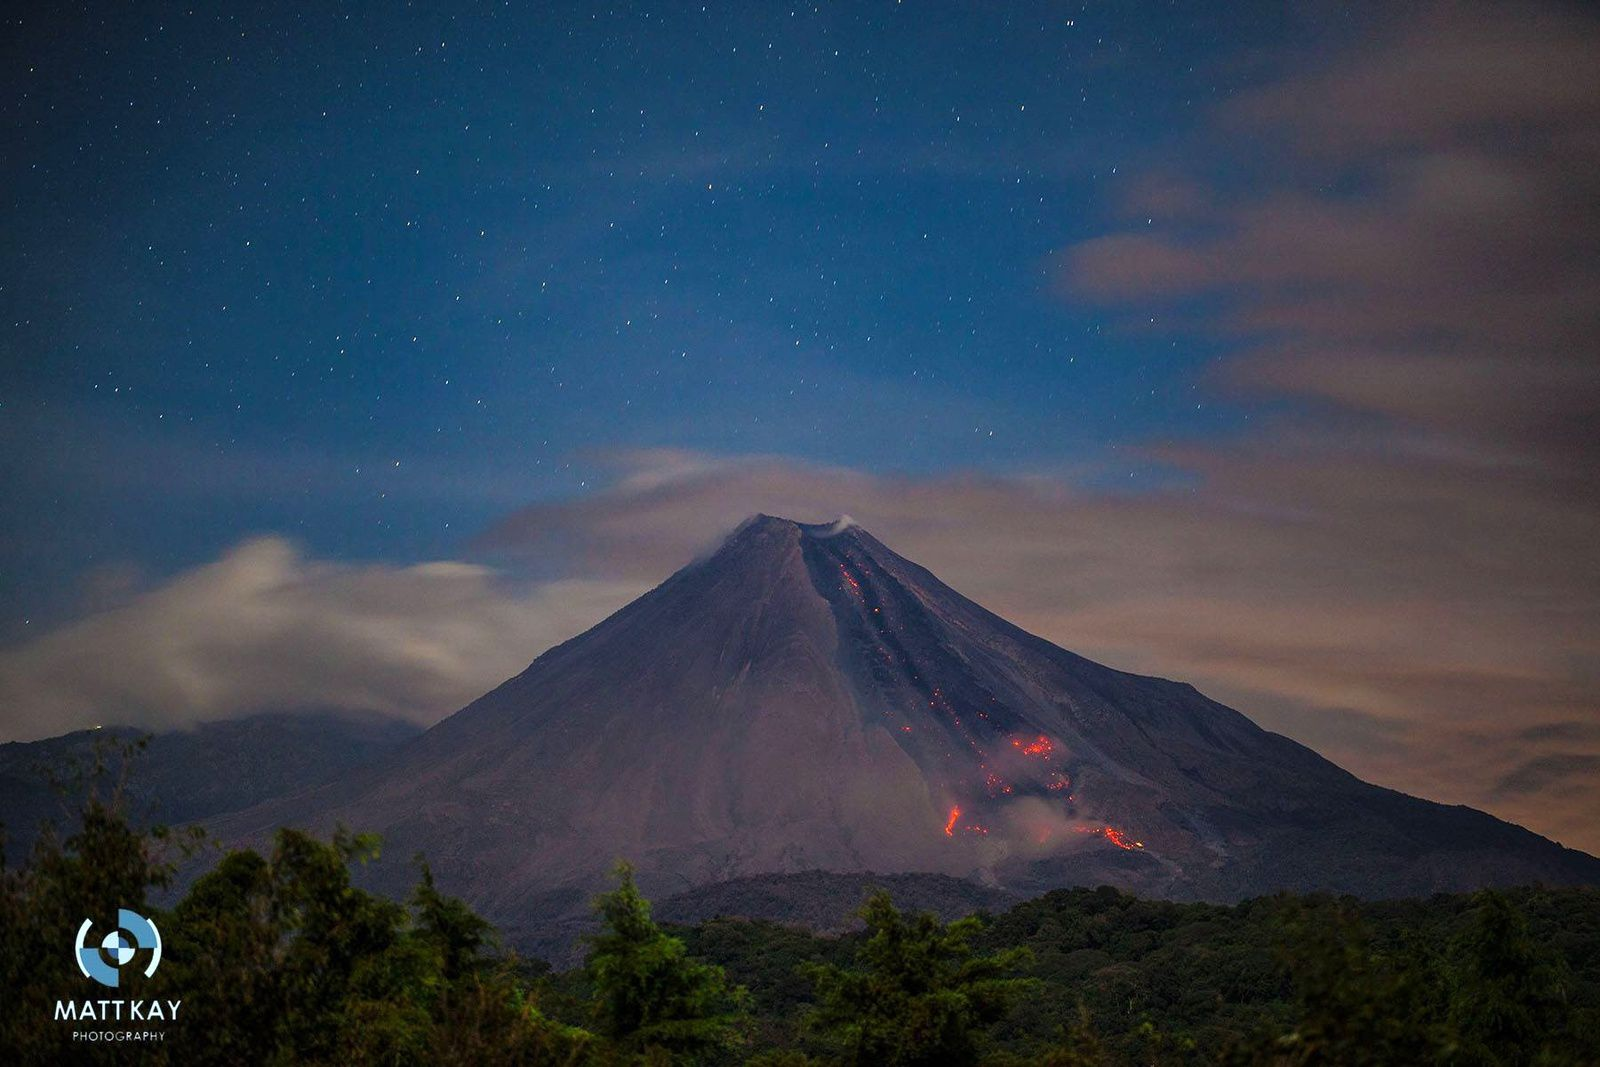 Colima 11.10.2016 - Lava continues to rise into Colima's summit lava dome & spill over the SW rim feeding the flow that reached the volcano's base - Mattkay  Tw (2)